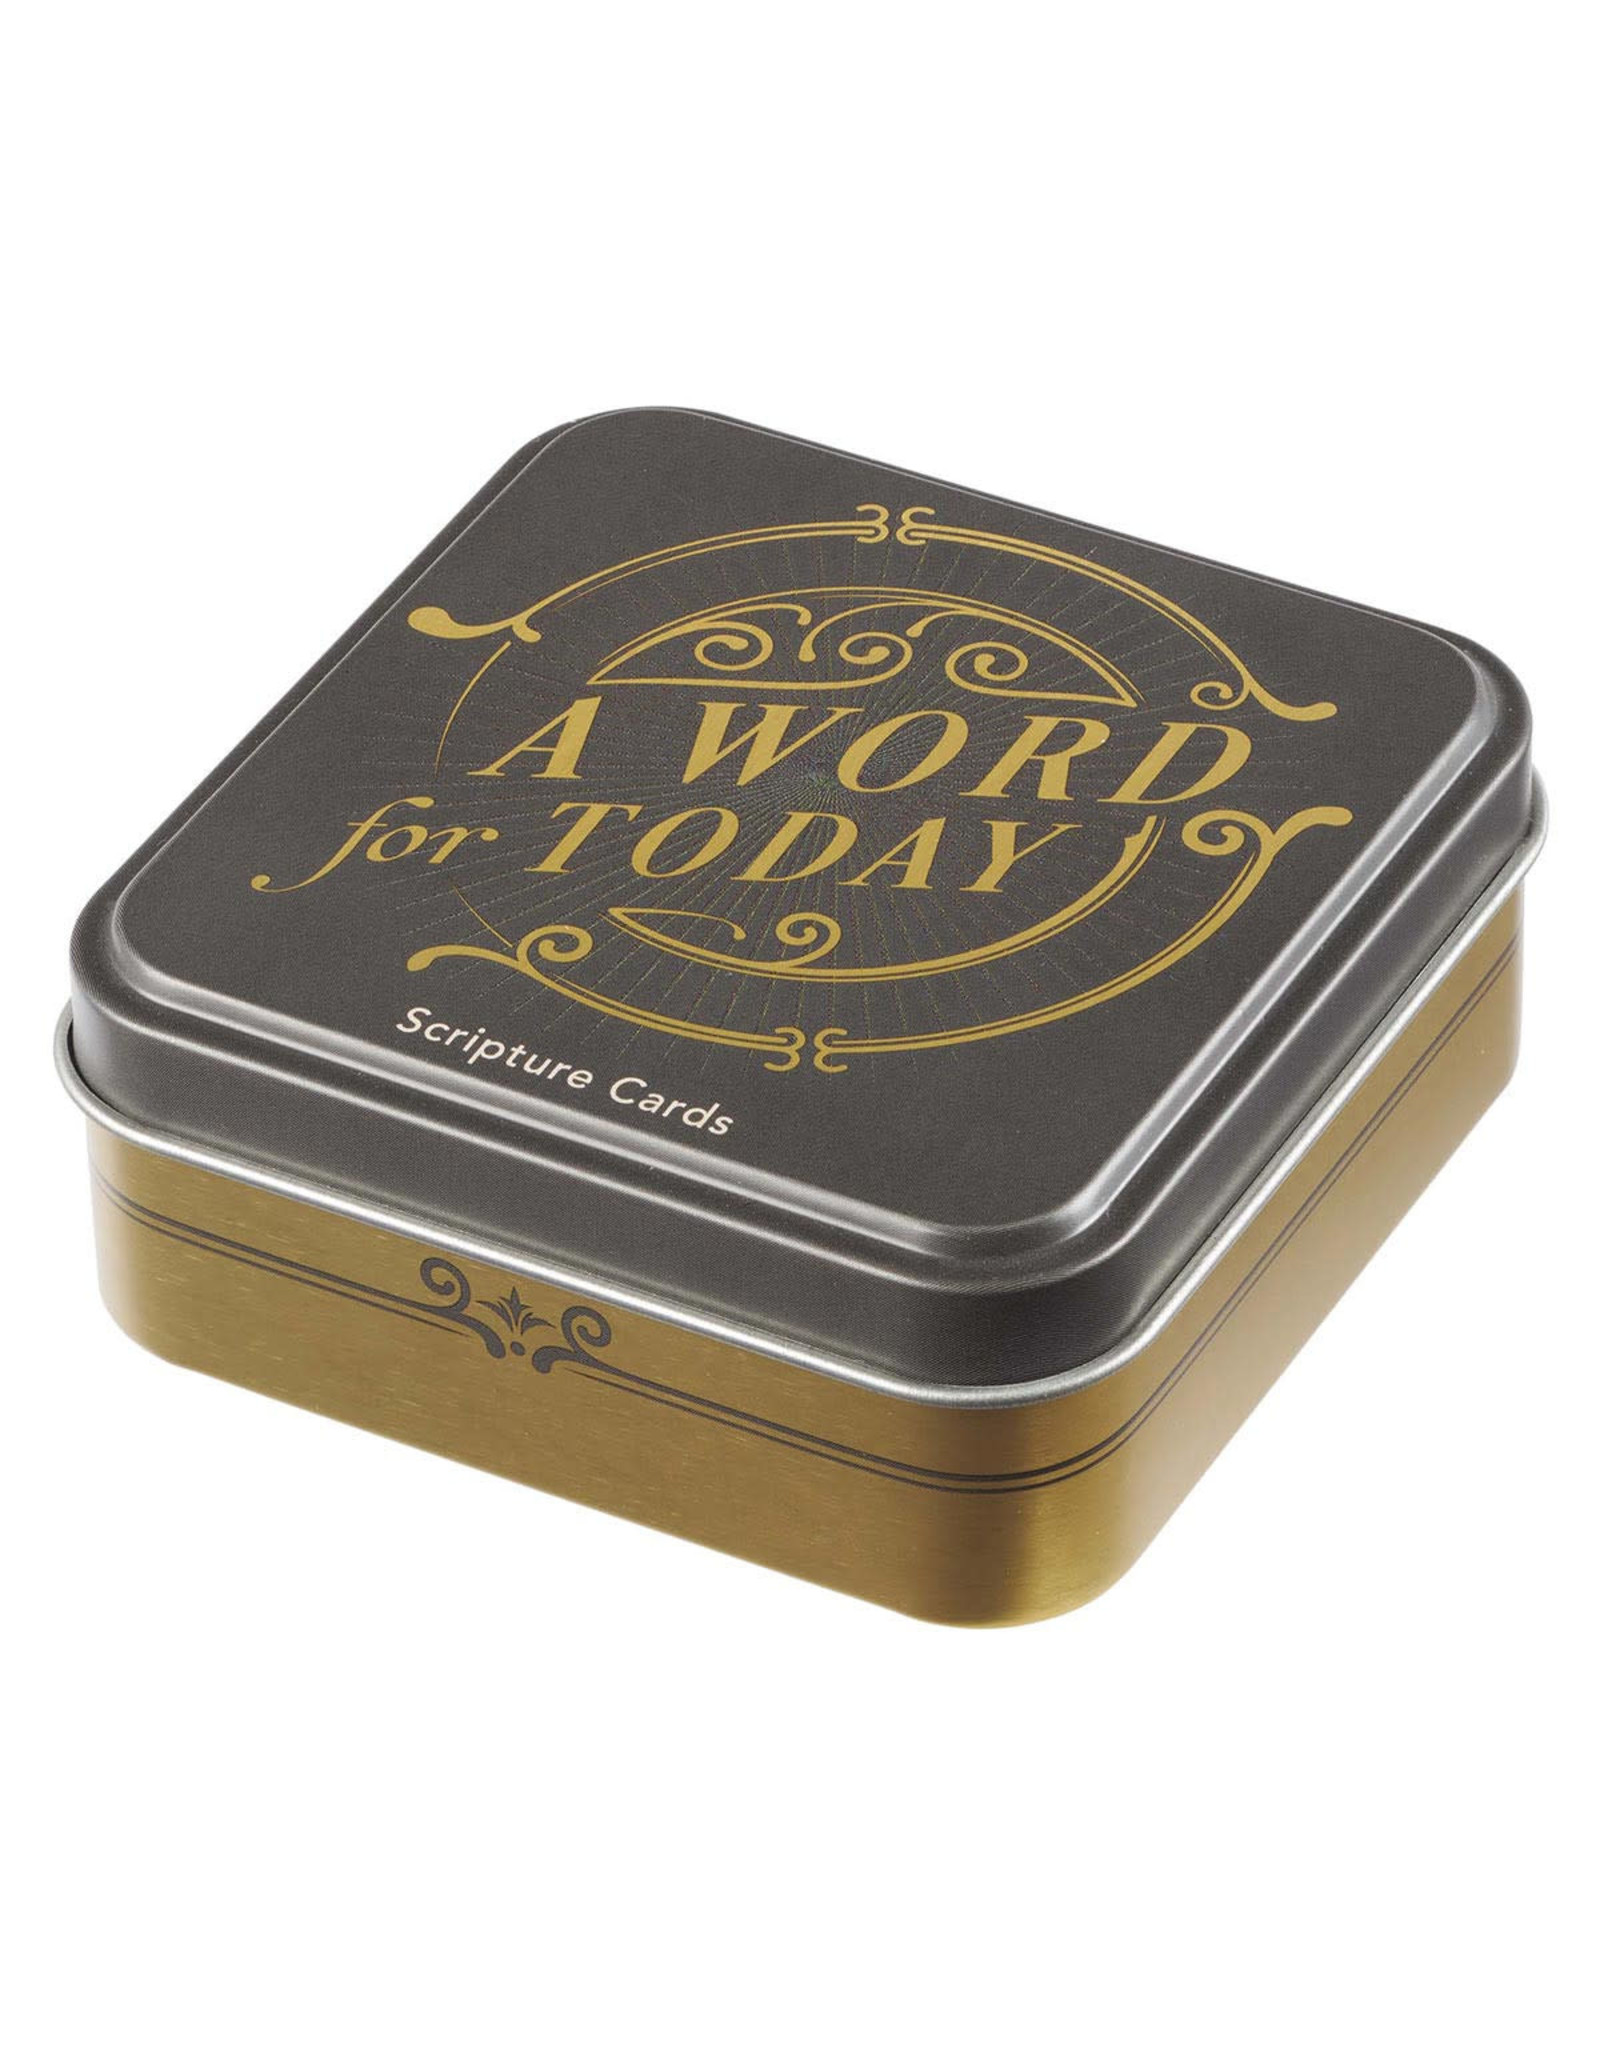 A Word for Today Scripture Cards in a Gift Tin